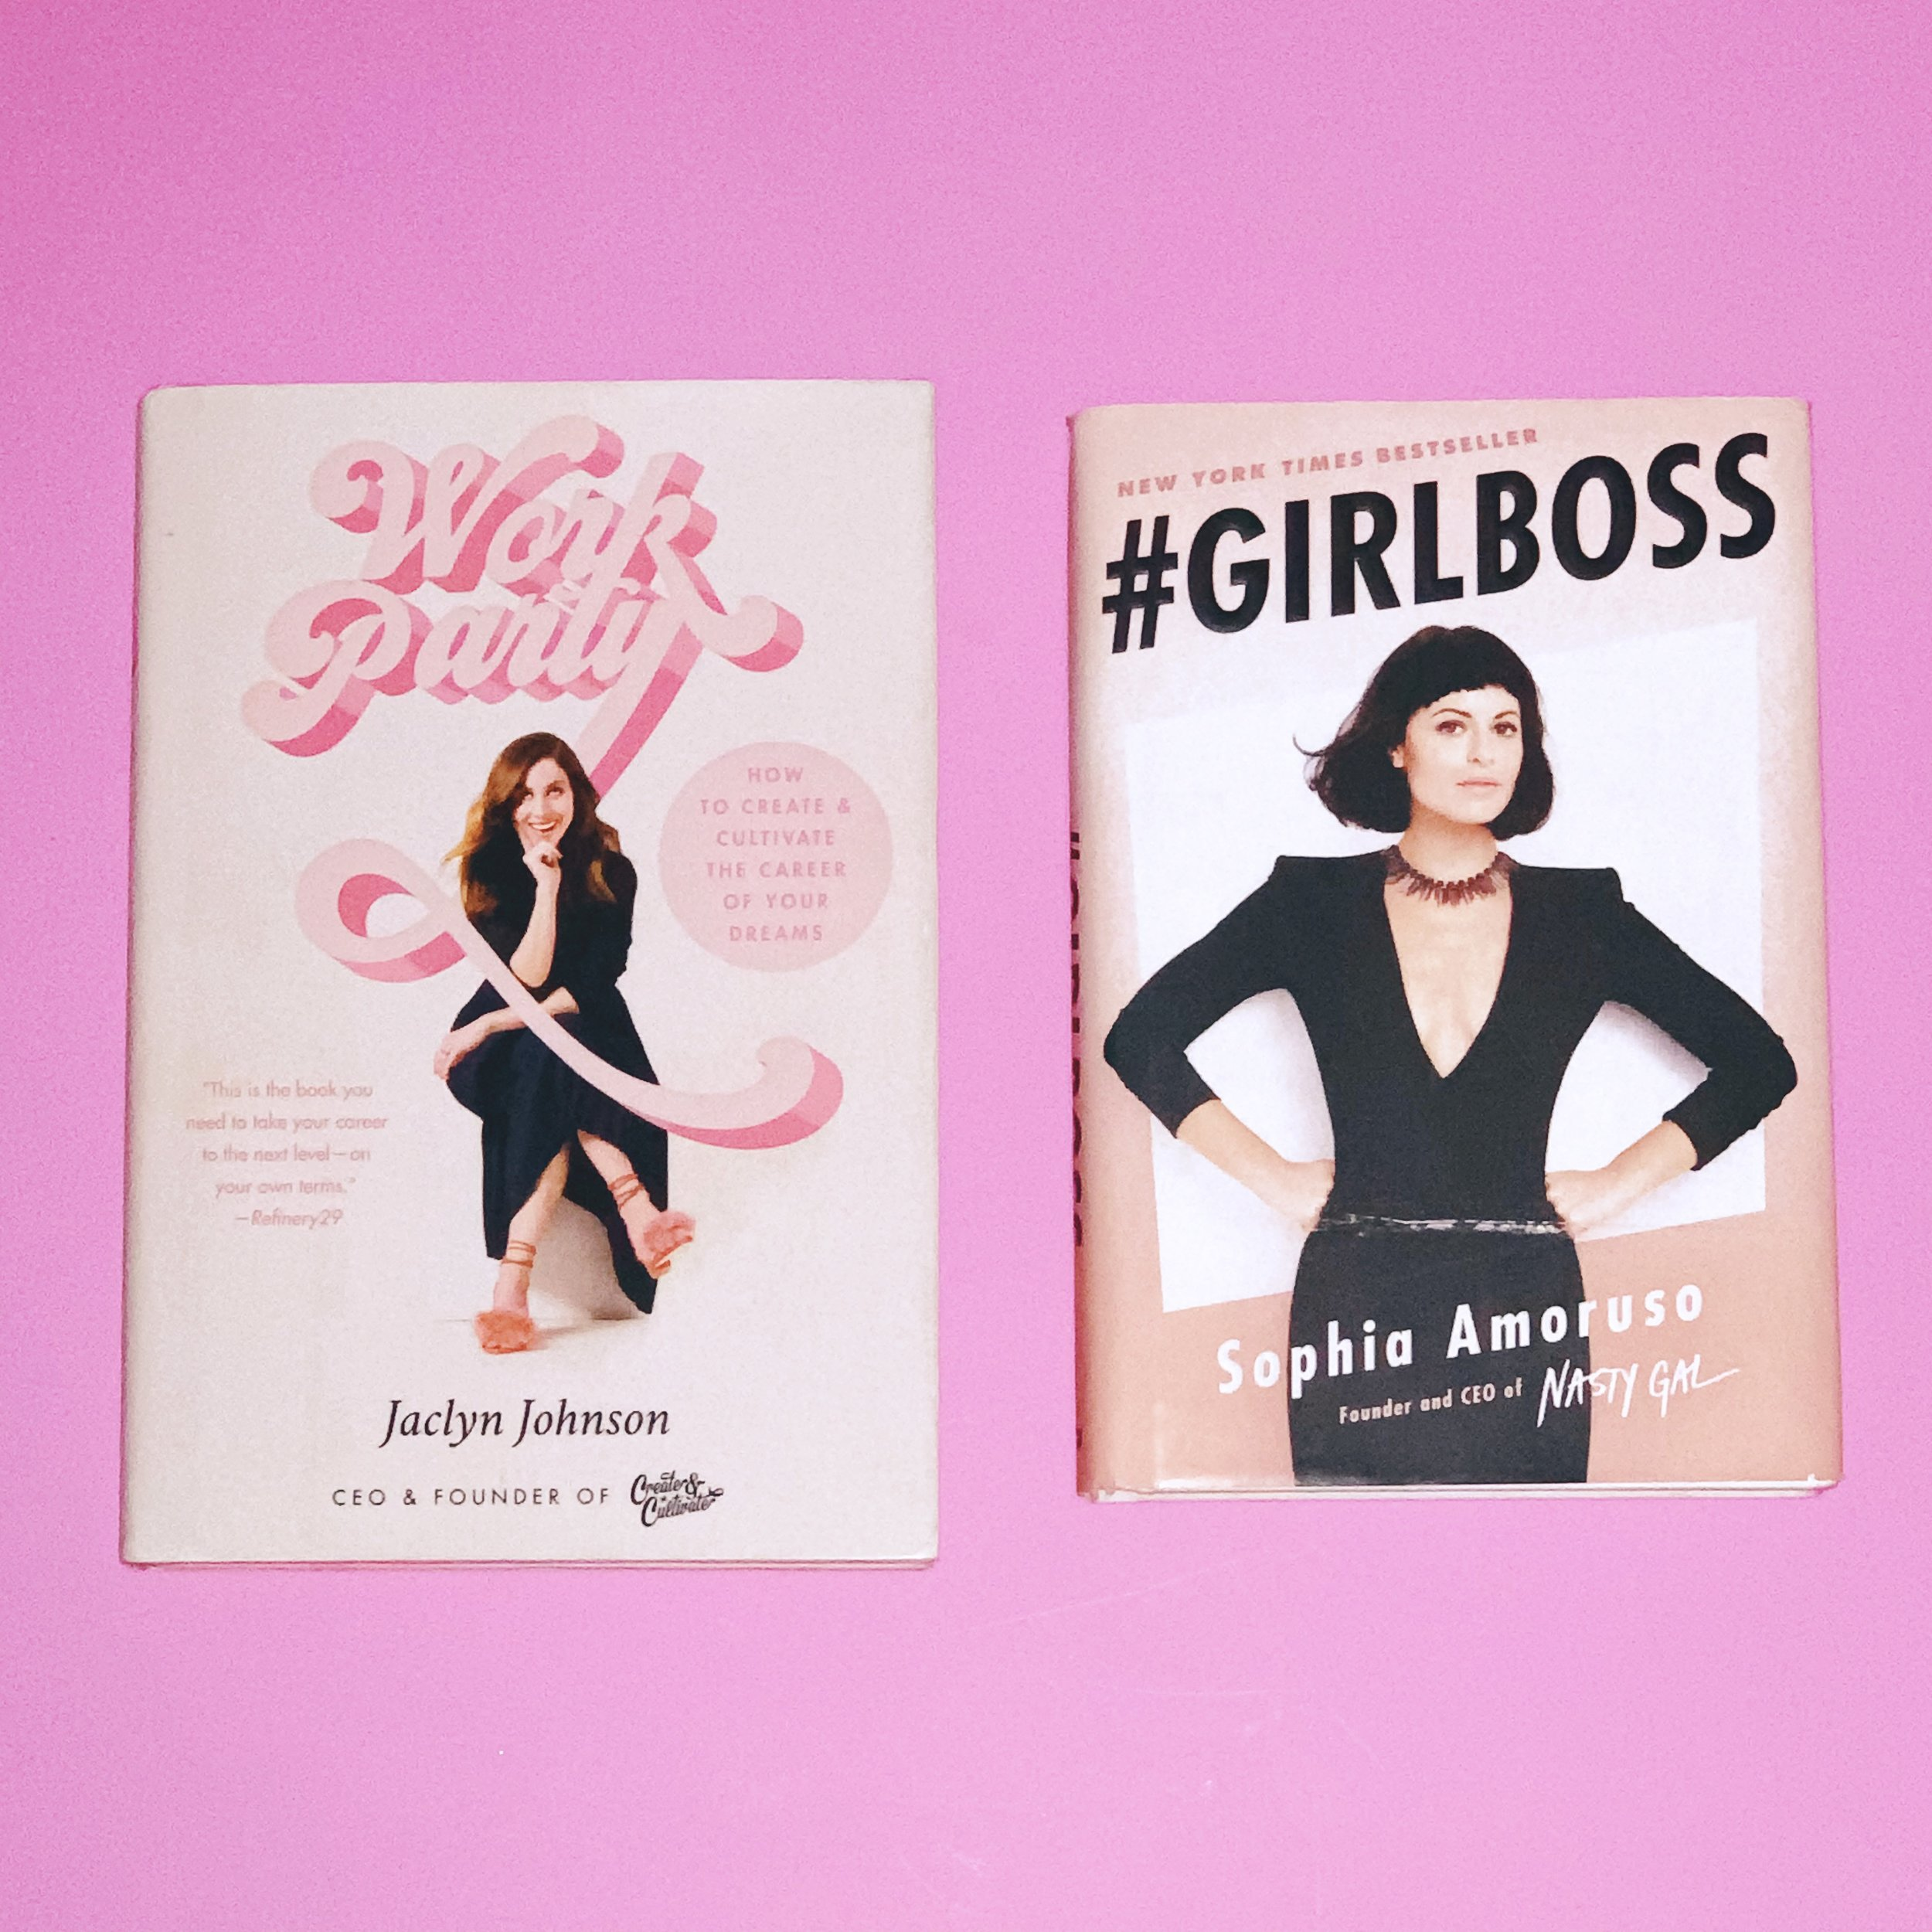 the-caroline-doll-work-party-girlboss-book-club.JPG